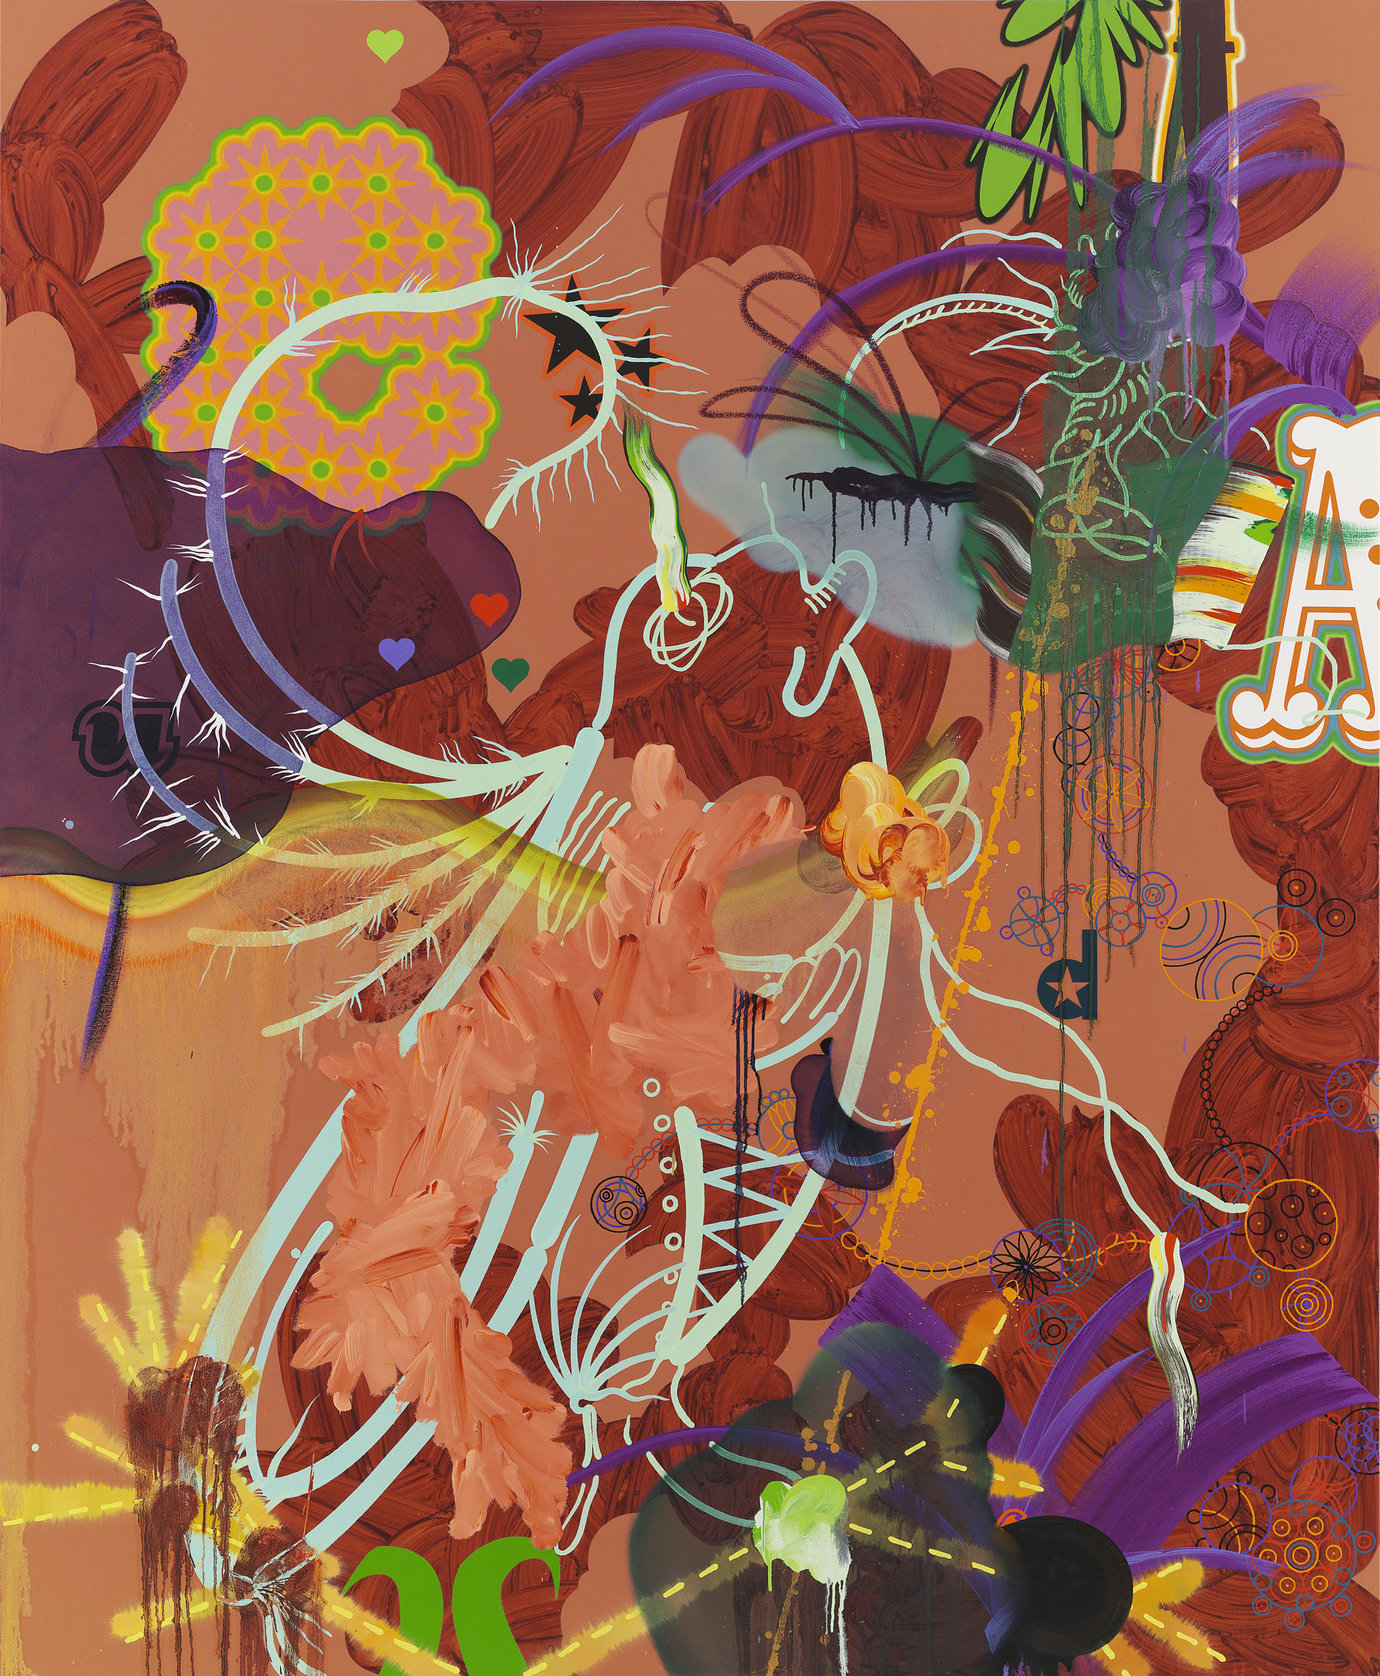 ", 2006. Oil and acrylic on canvas, 91"" x 75"" (231.1 cm x 190.5 cm)."